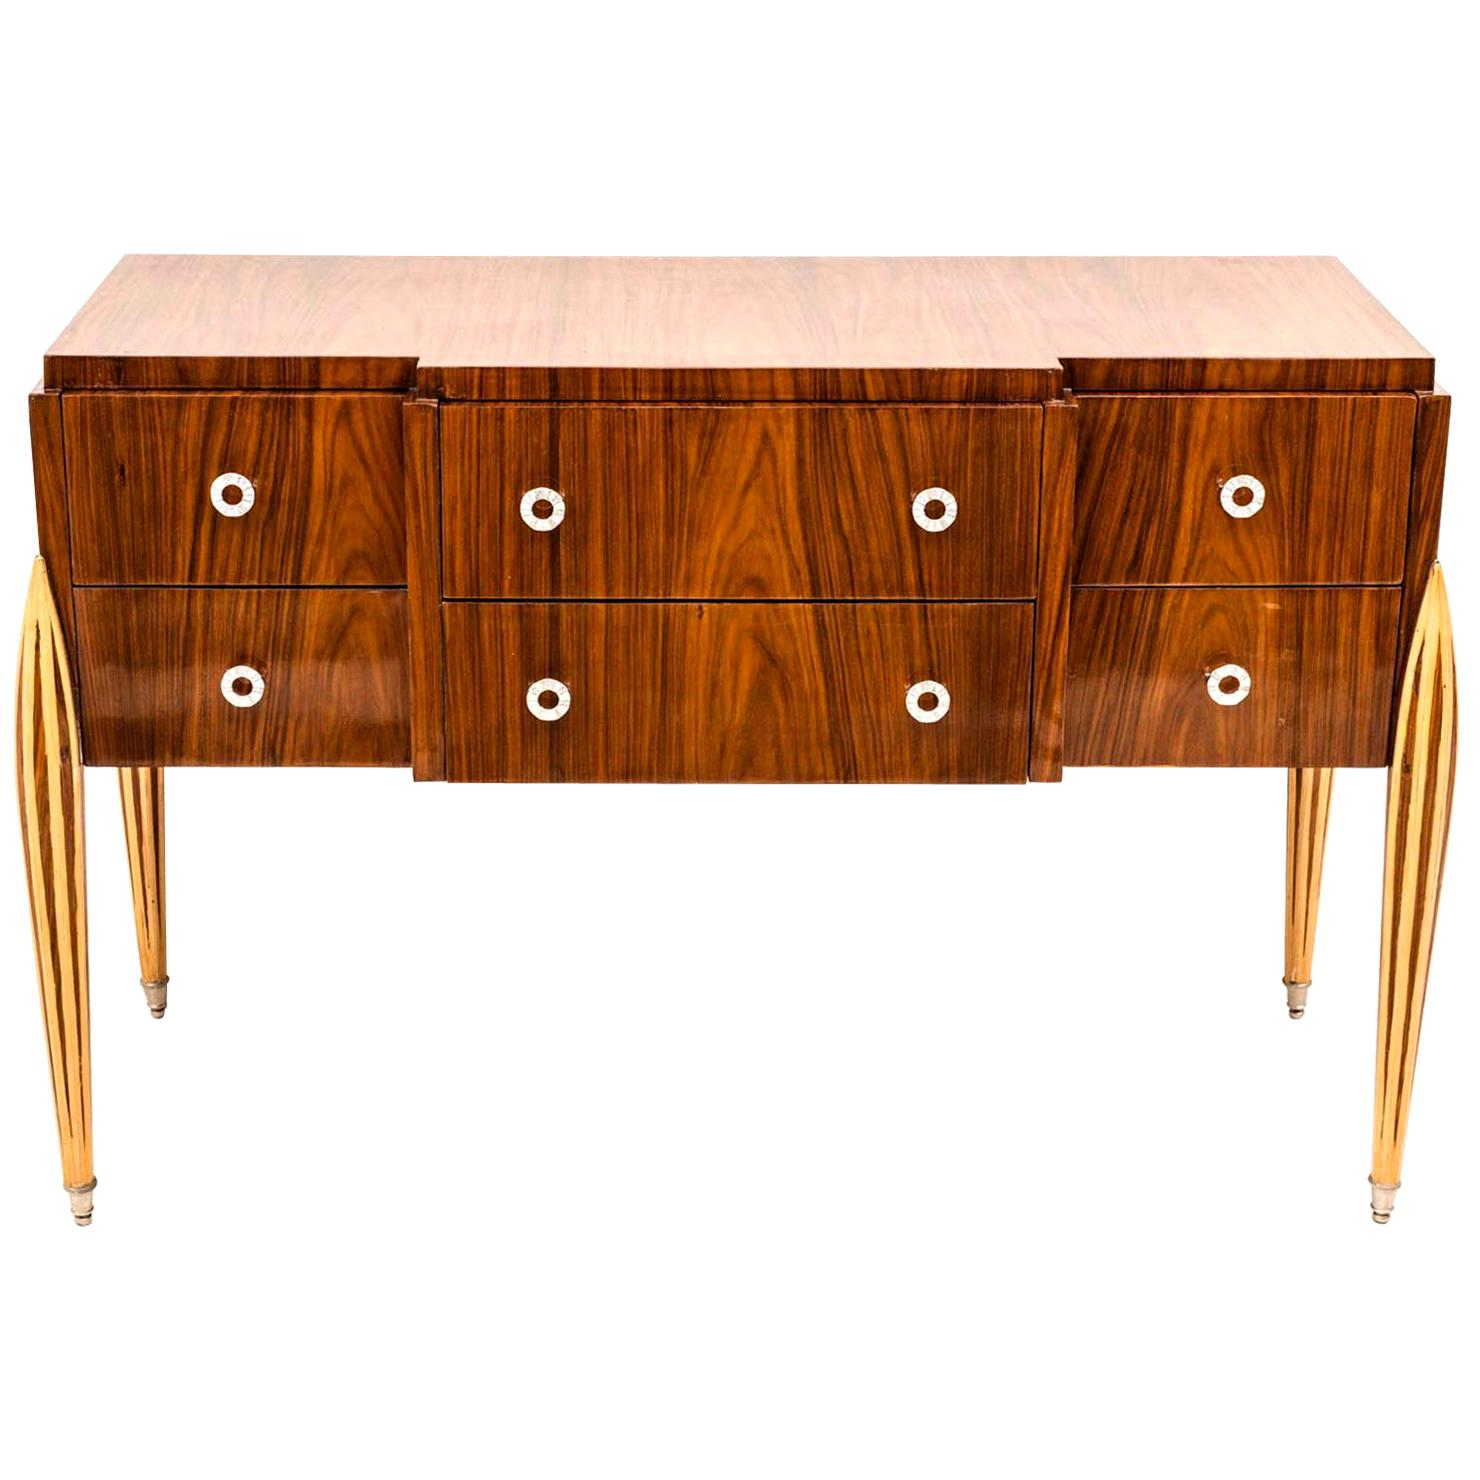 French Art Deco Chest of Drawer or Commode, 1930